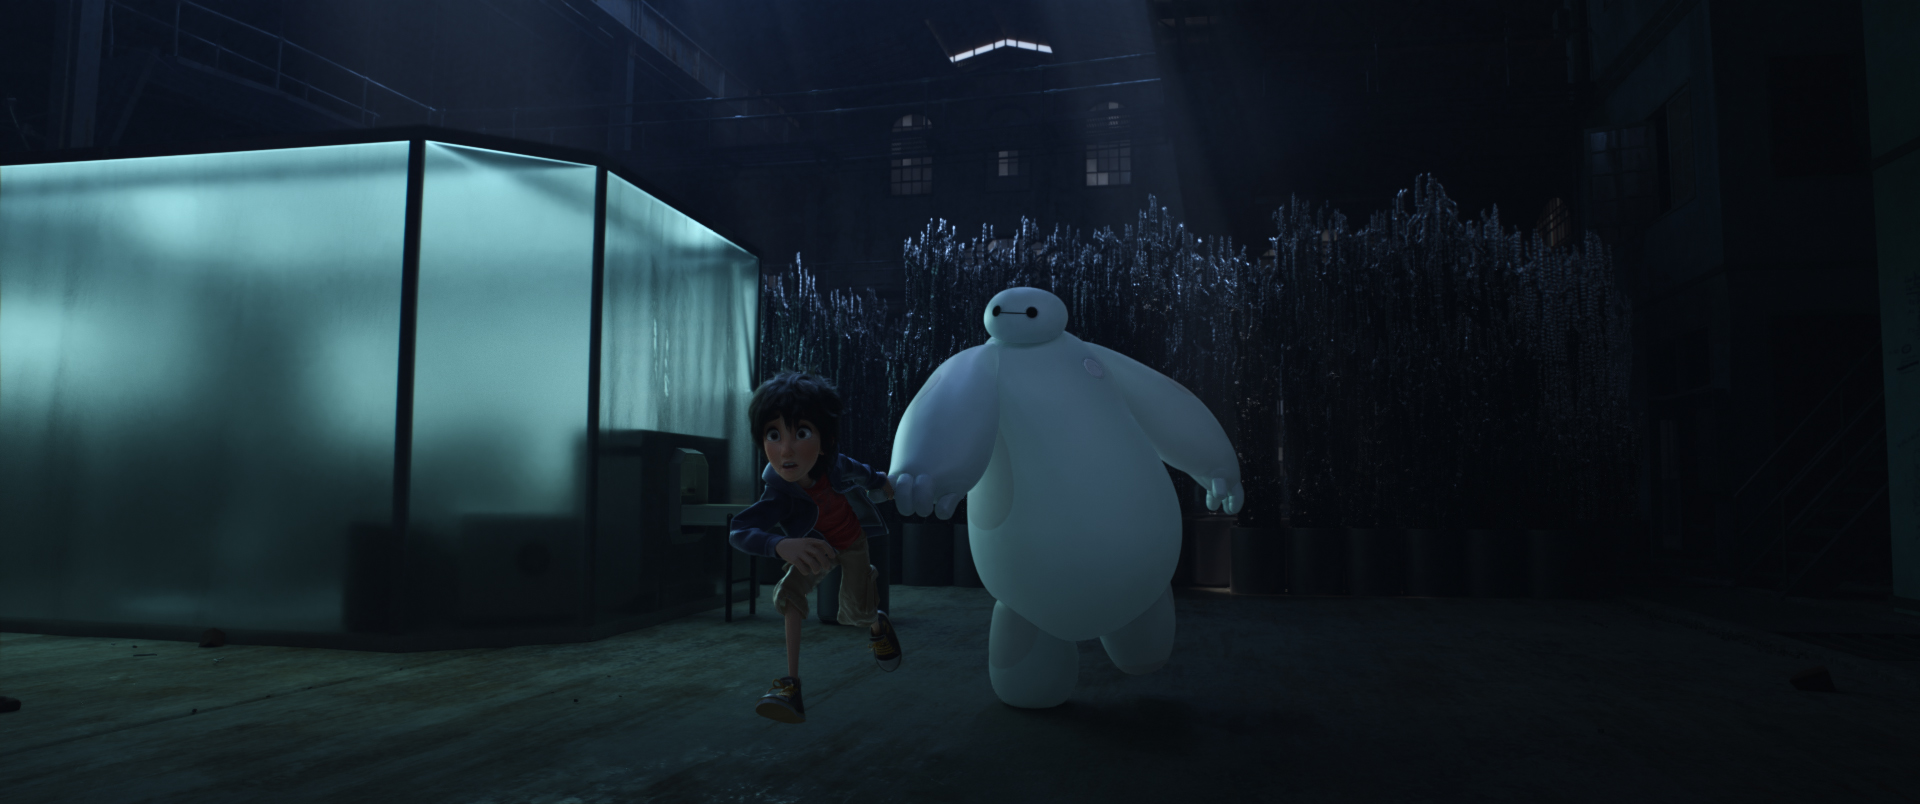 Big Hero 6: Baymax e Hiro in fuga in una scena del film